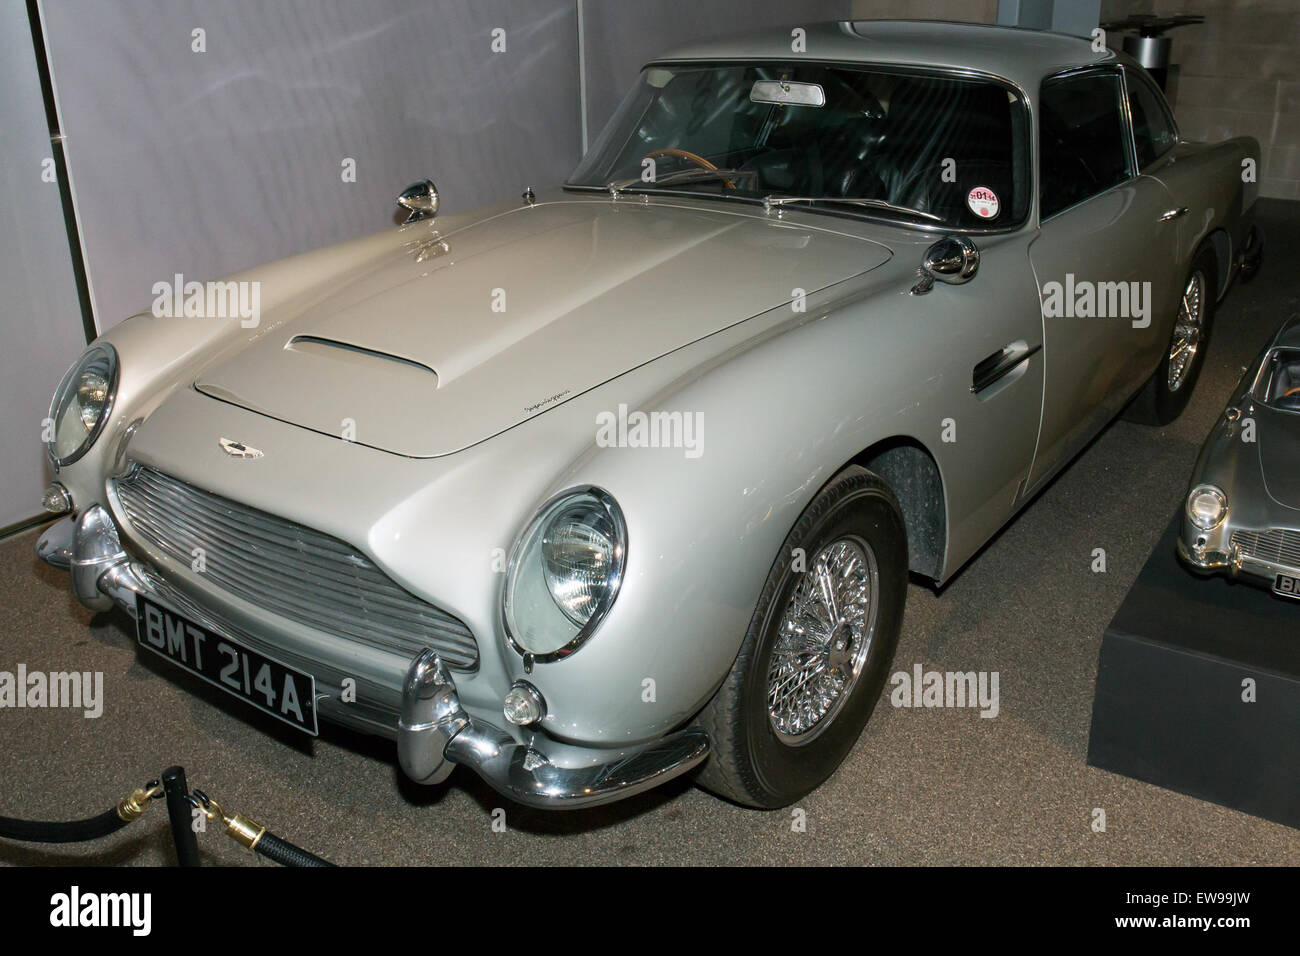 aston martin db5 (skyfall) front-left national motor museum